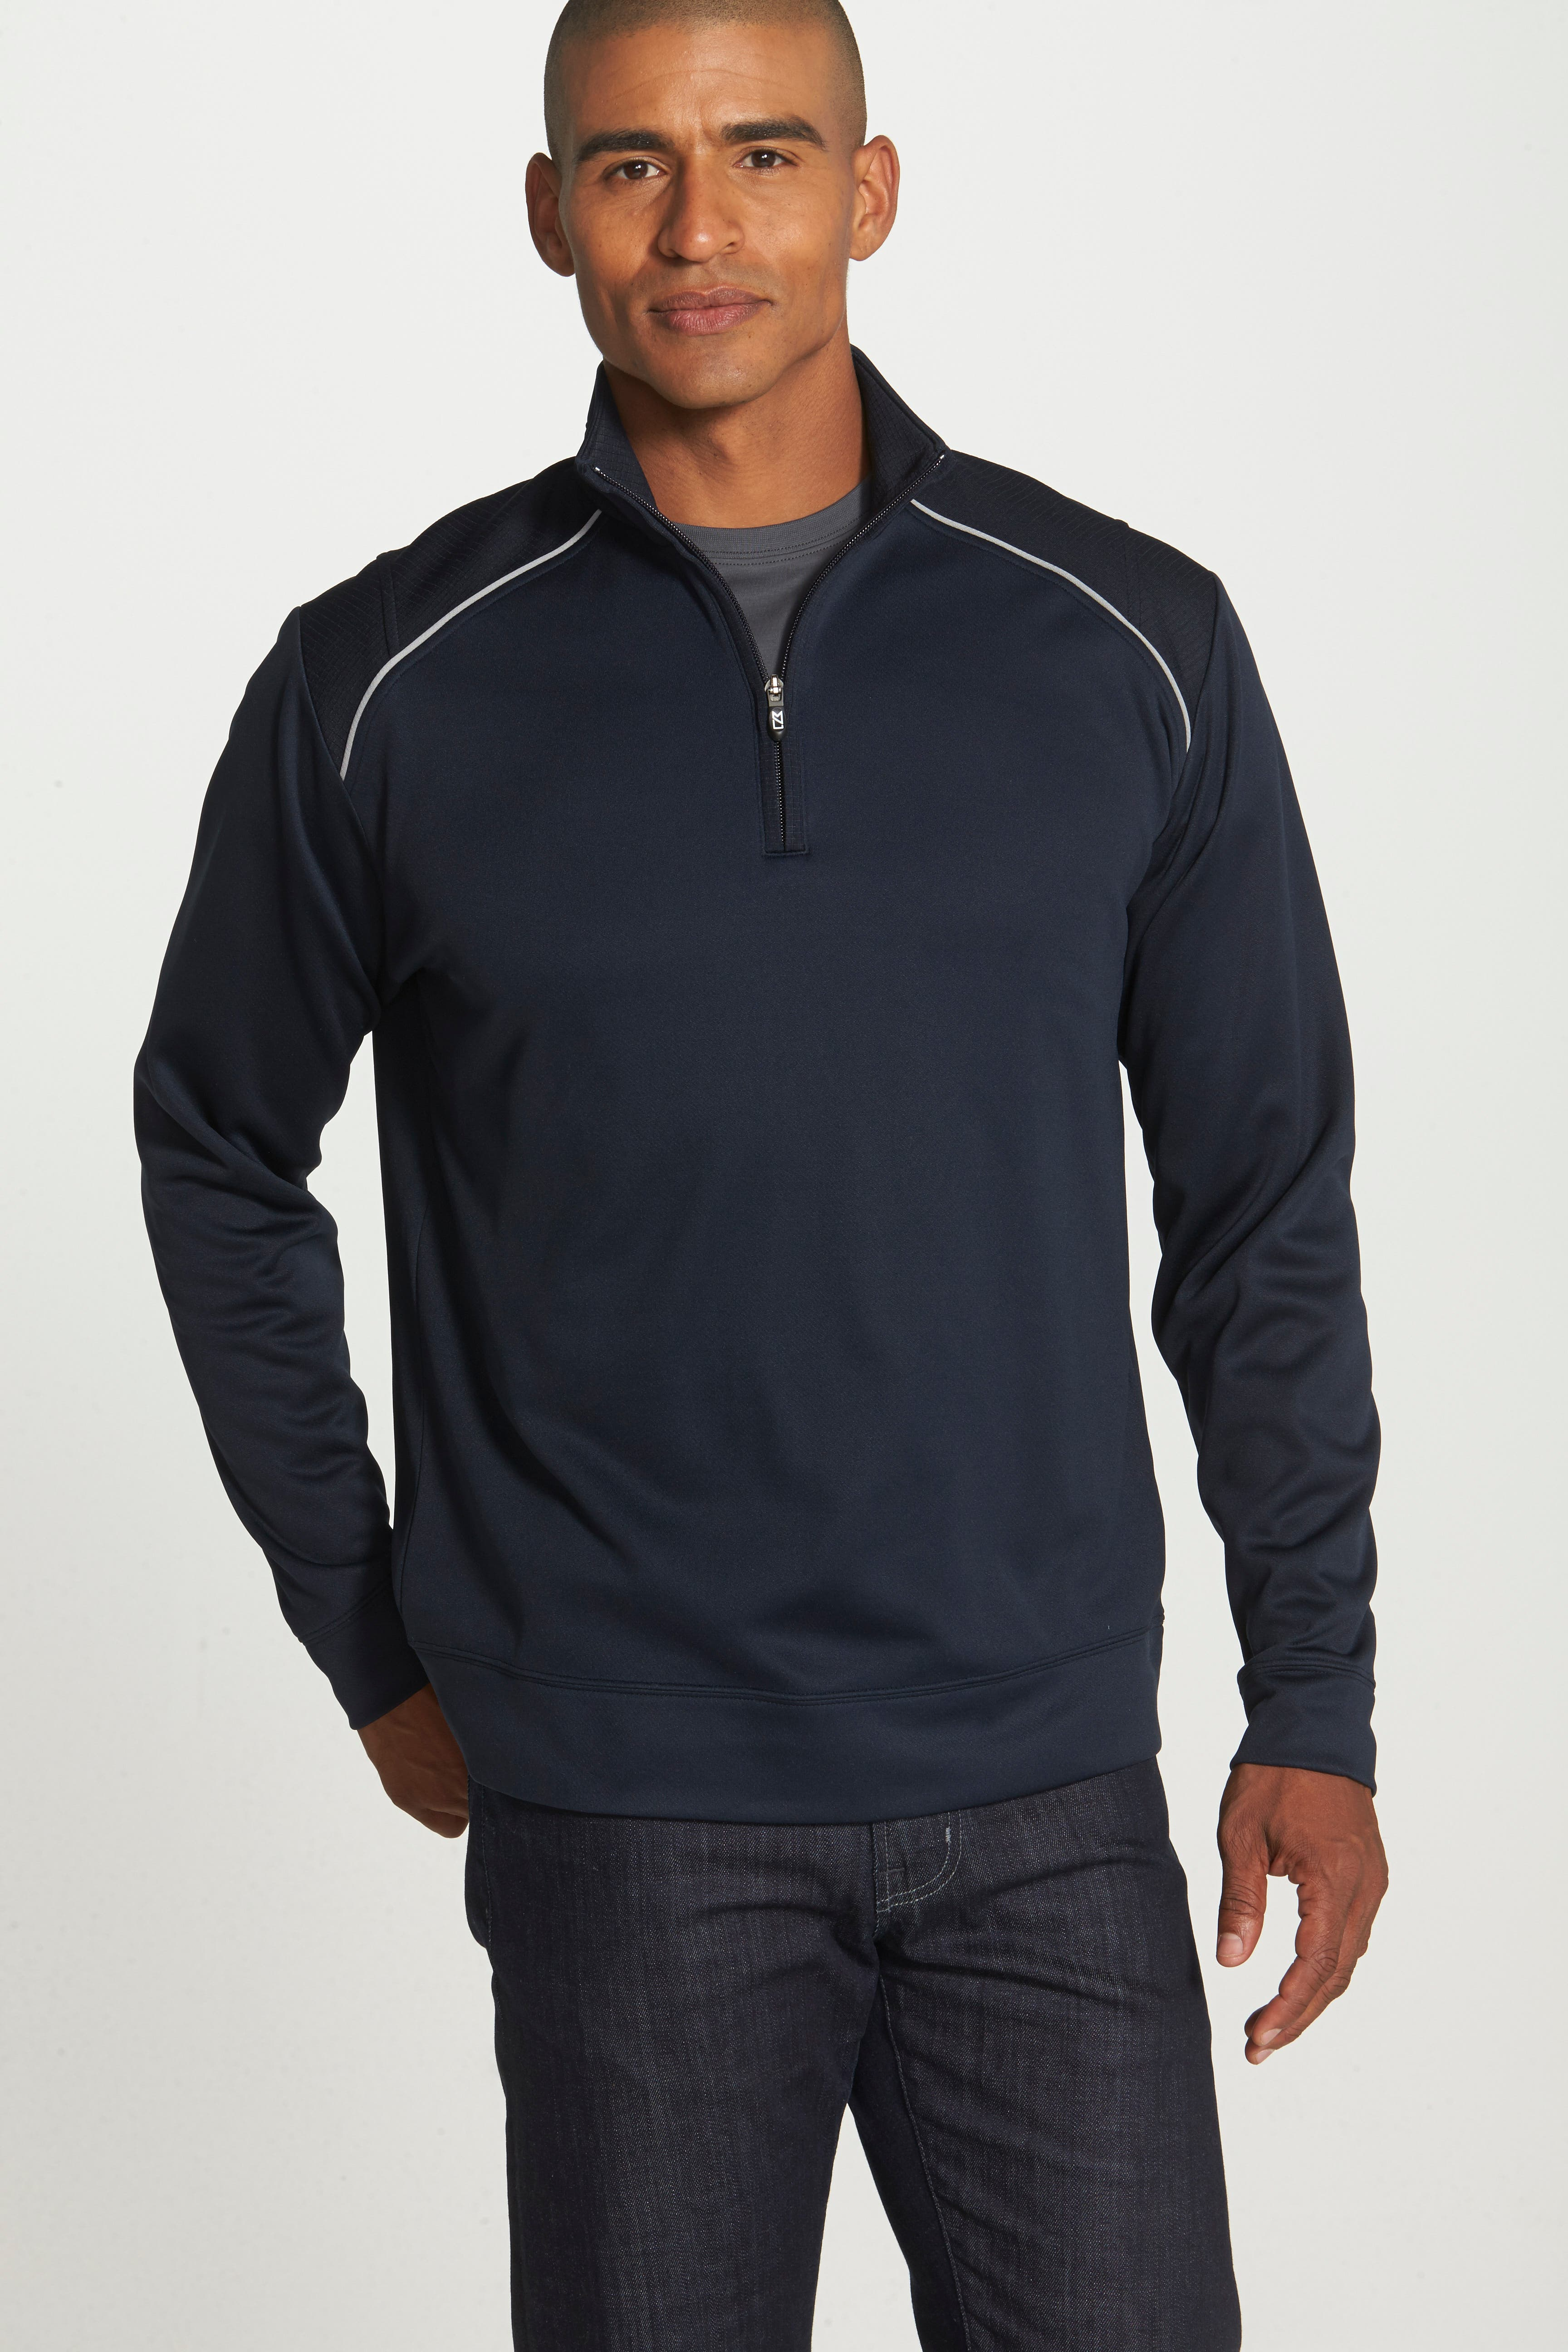 CUTTER & BUCK, Ridge WeatherTec Wind & Water Resistant Pullover, Alternate thumbnail 4, color, NAVY BLUE